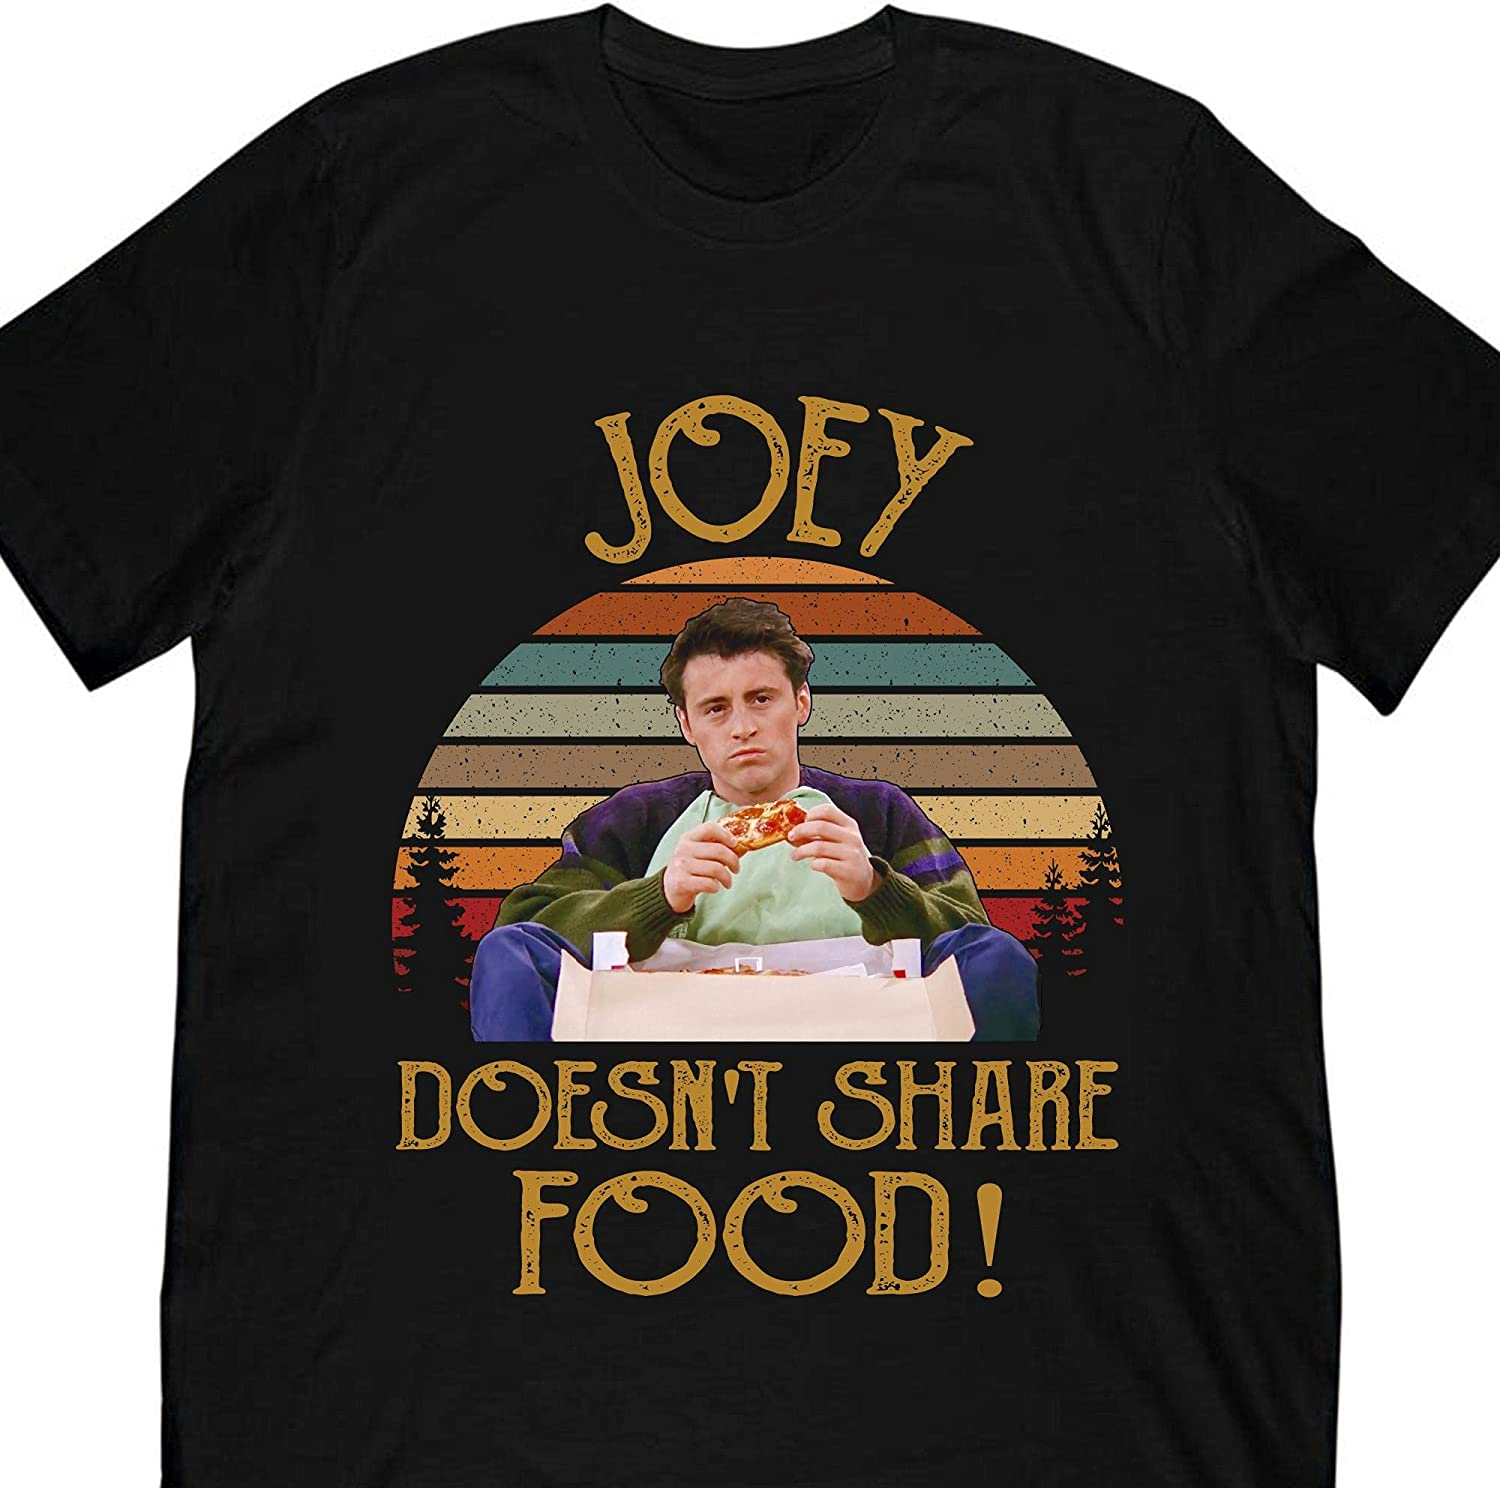 Tv Show Friends Joey Shirt Joey Doesn't Share Food T-Shirt Vintage Movie 80S Gift HS0104265